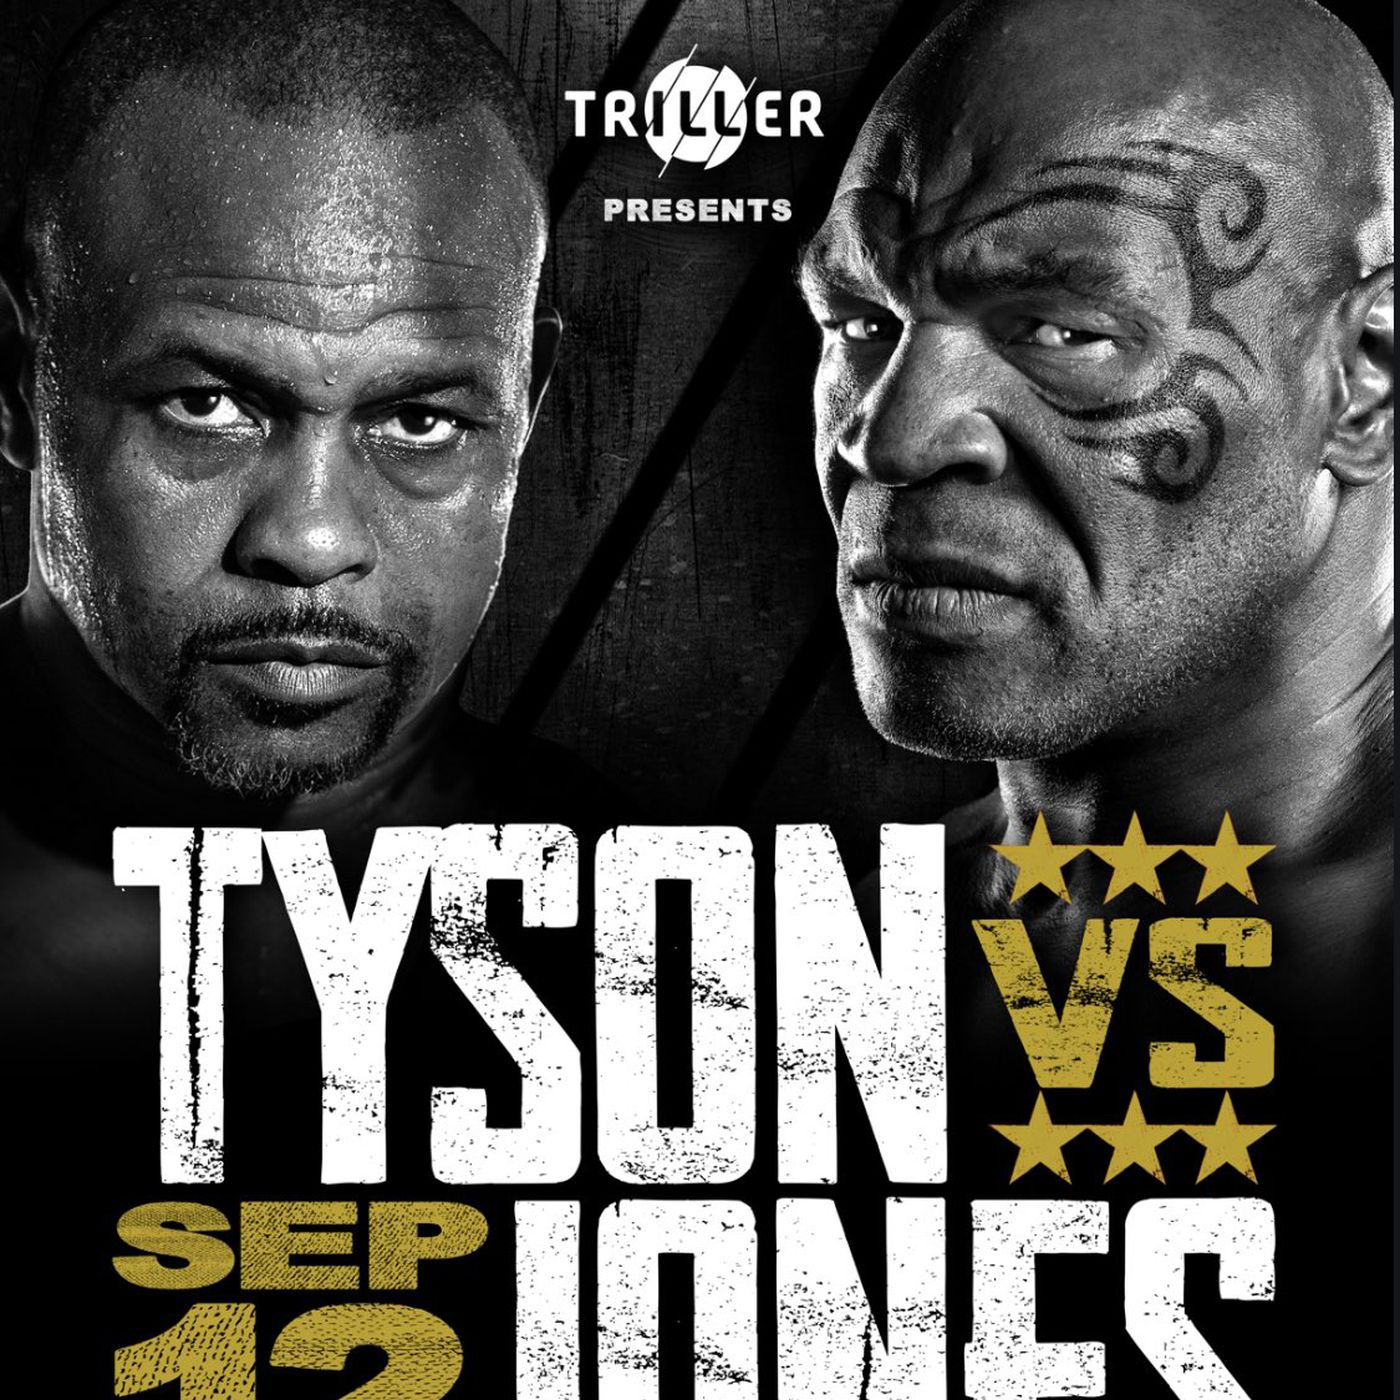 mike tyson vs roy jones jr poster for sept 12 boxing bout mmamania com mike tyson vs roy jones jr poster for